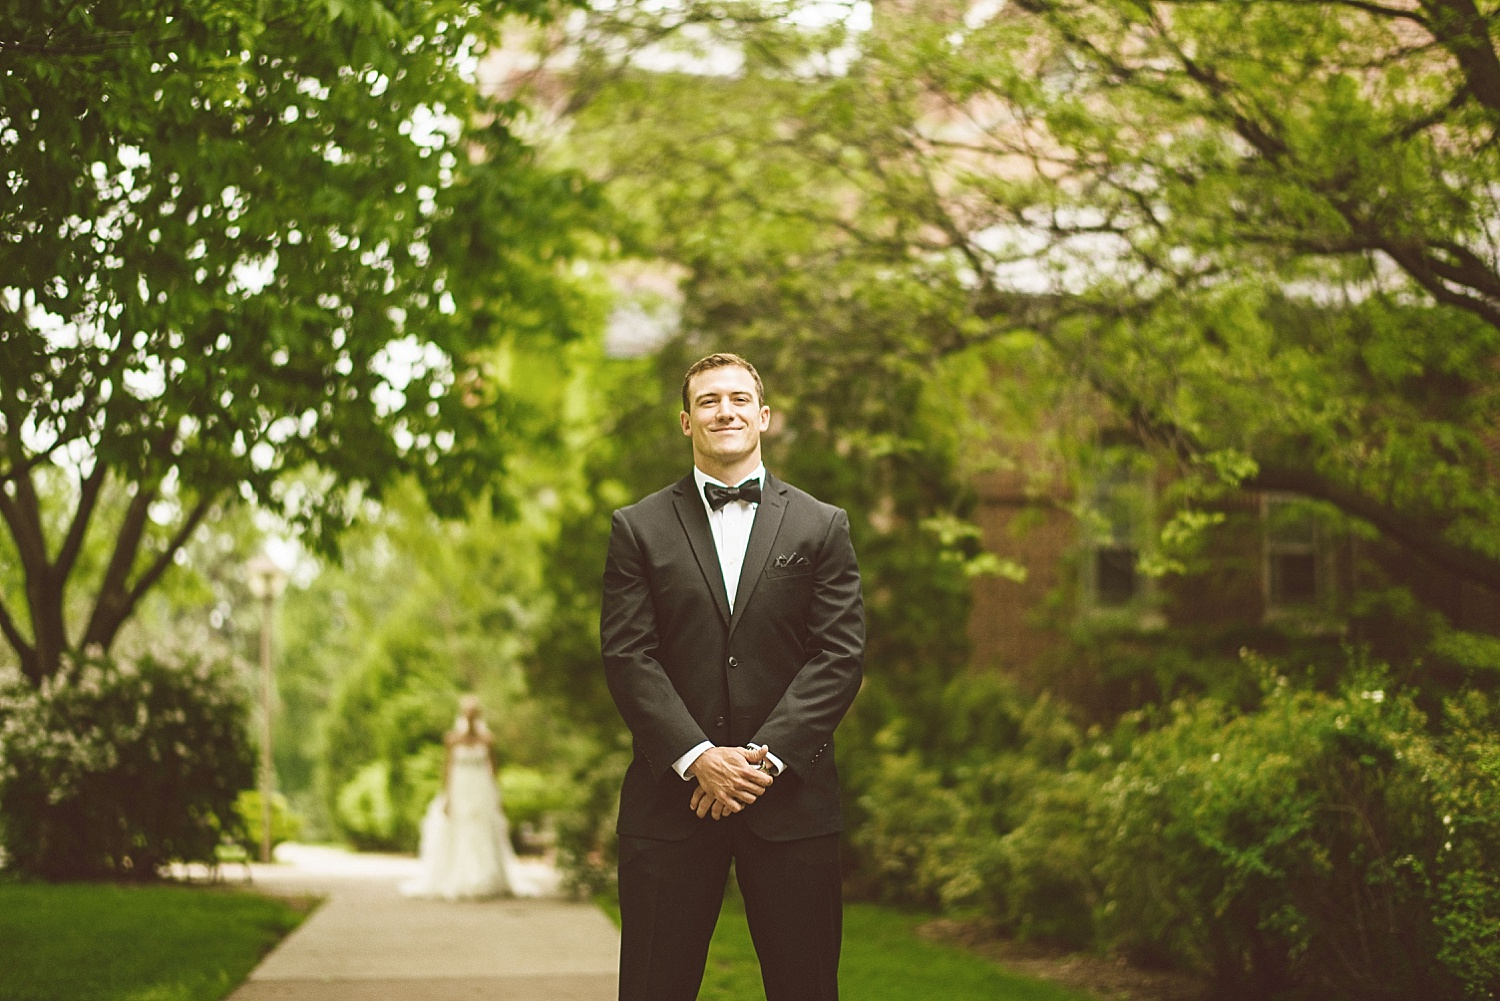 Tom_Alex_nicollet_island_wedding_by_lucas_botz_Photography_0001.jpg